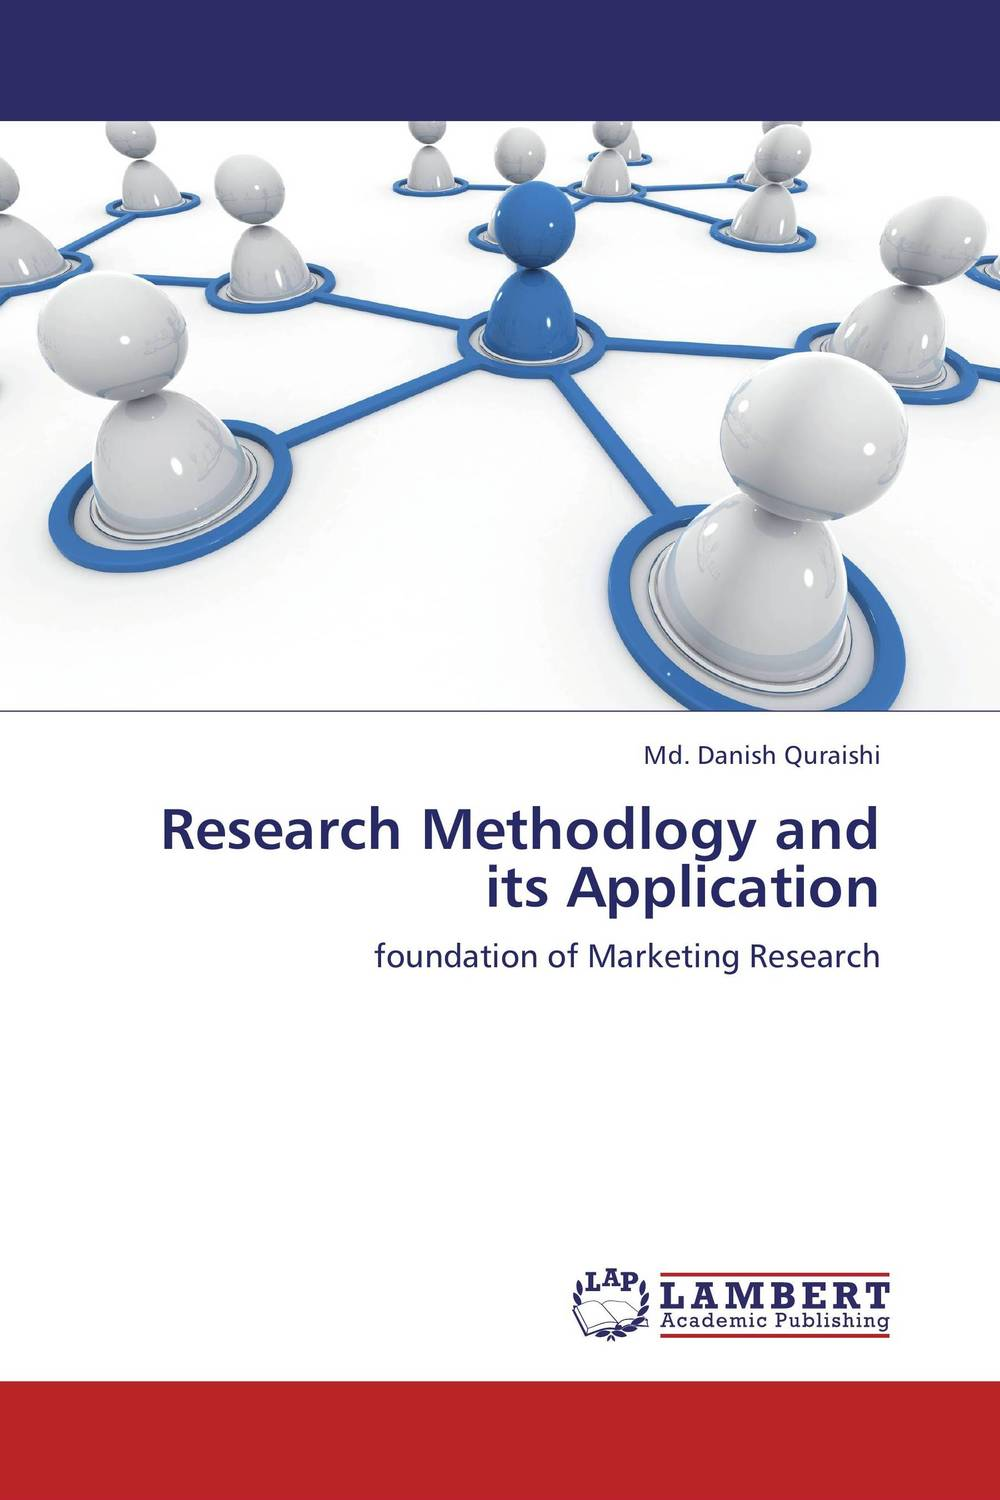 Research Methodlogy and its Application belousov a security features of banknotes and other documents methods of authentication manual денежные билеты бланки ценных бумаг и документов